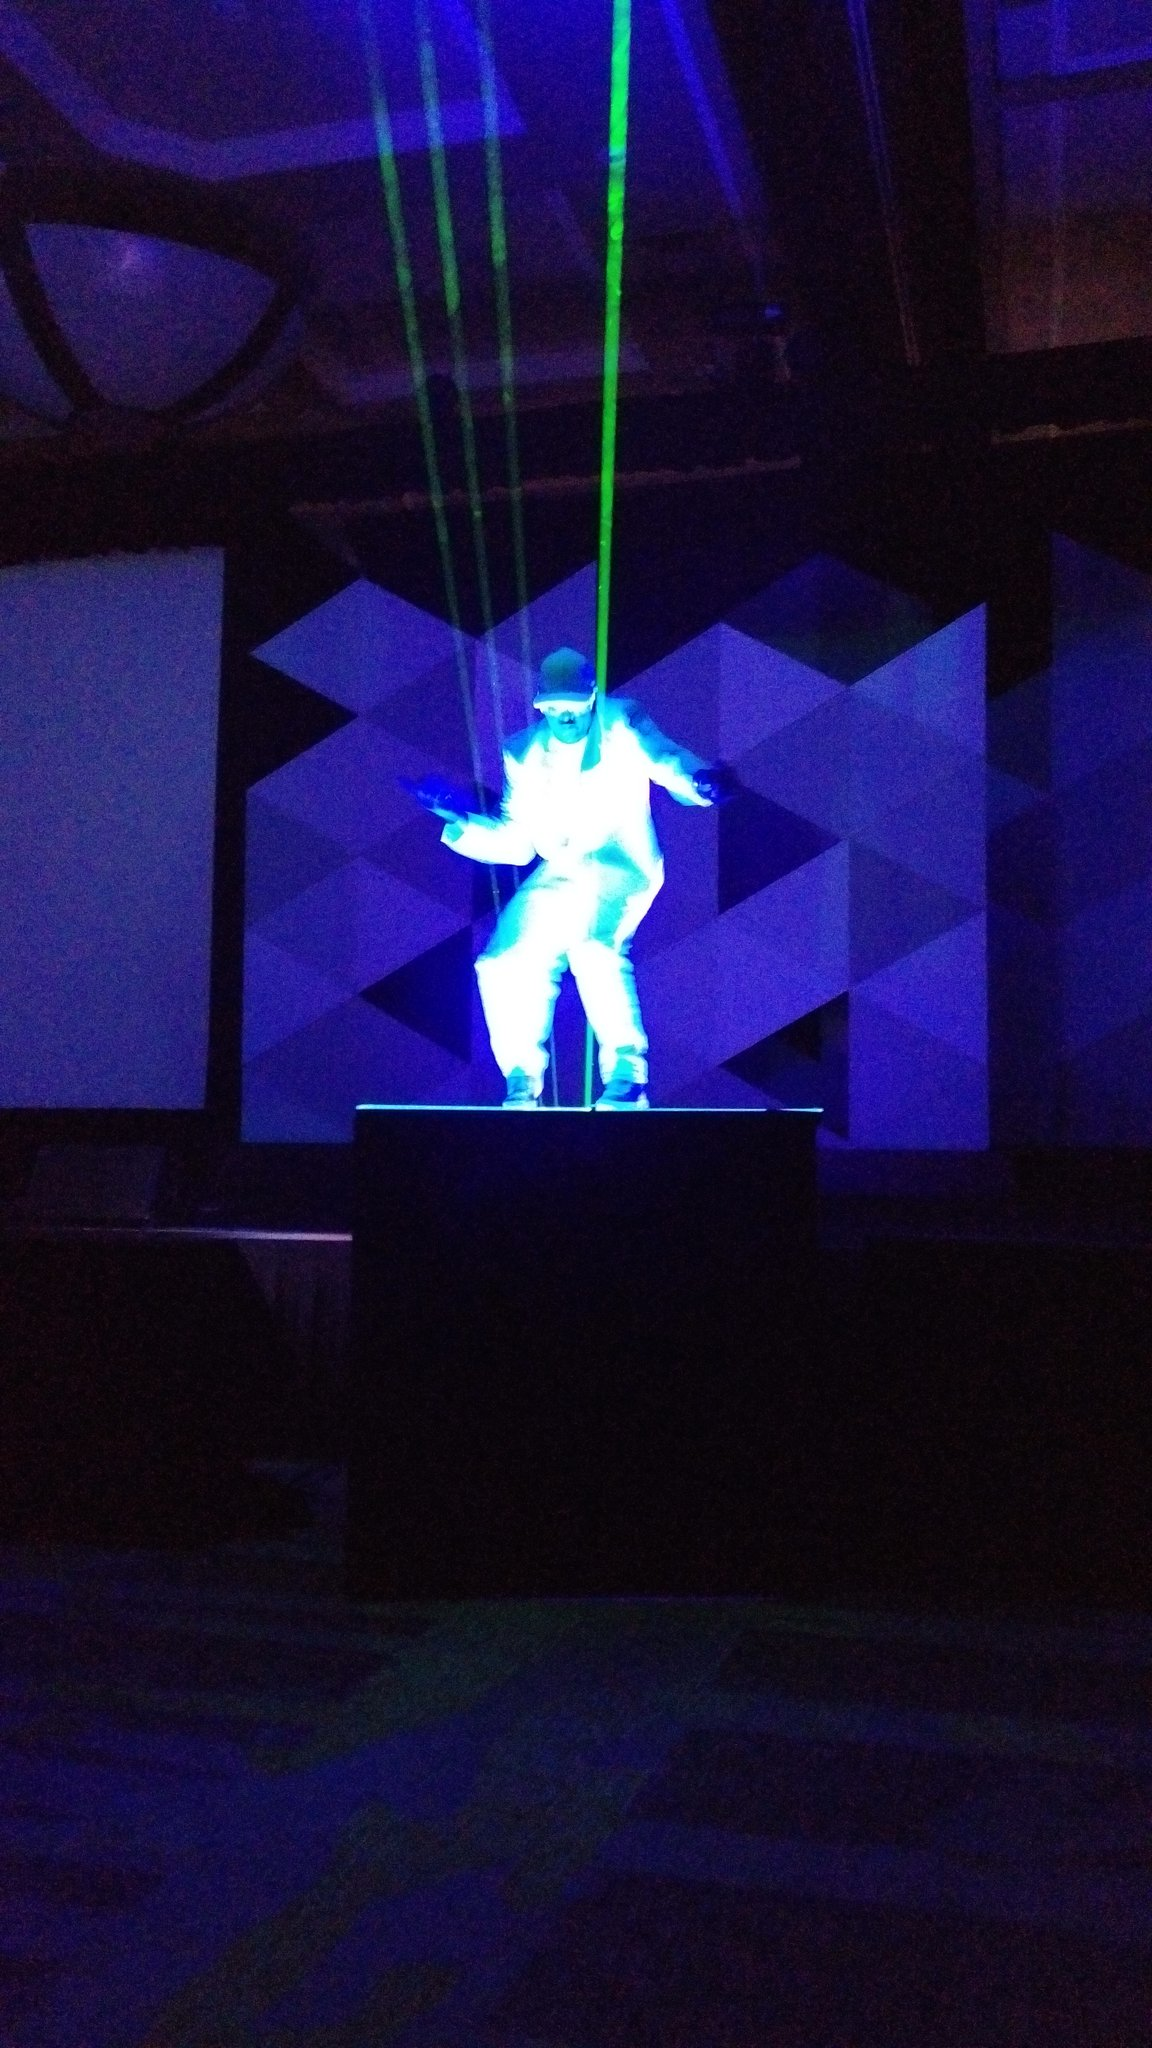 And we are off with a MJ meets BlueMan meets Lasershow #ADPMOTM https://t.co/C8GXwpnaeI